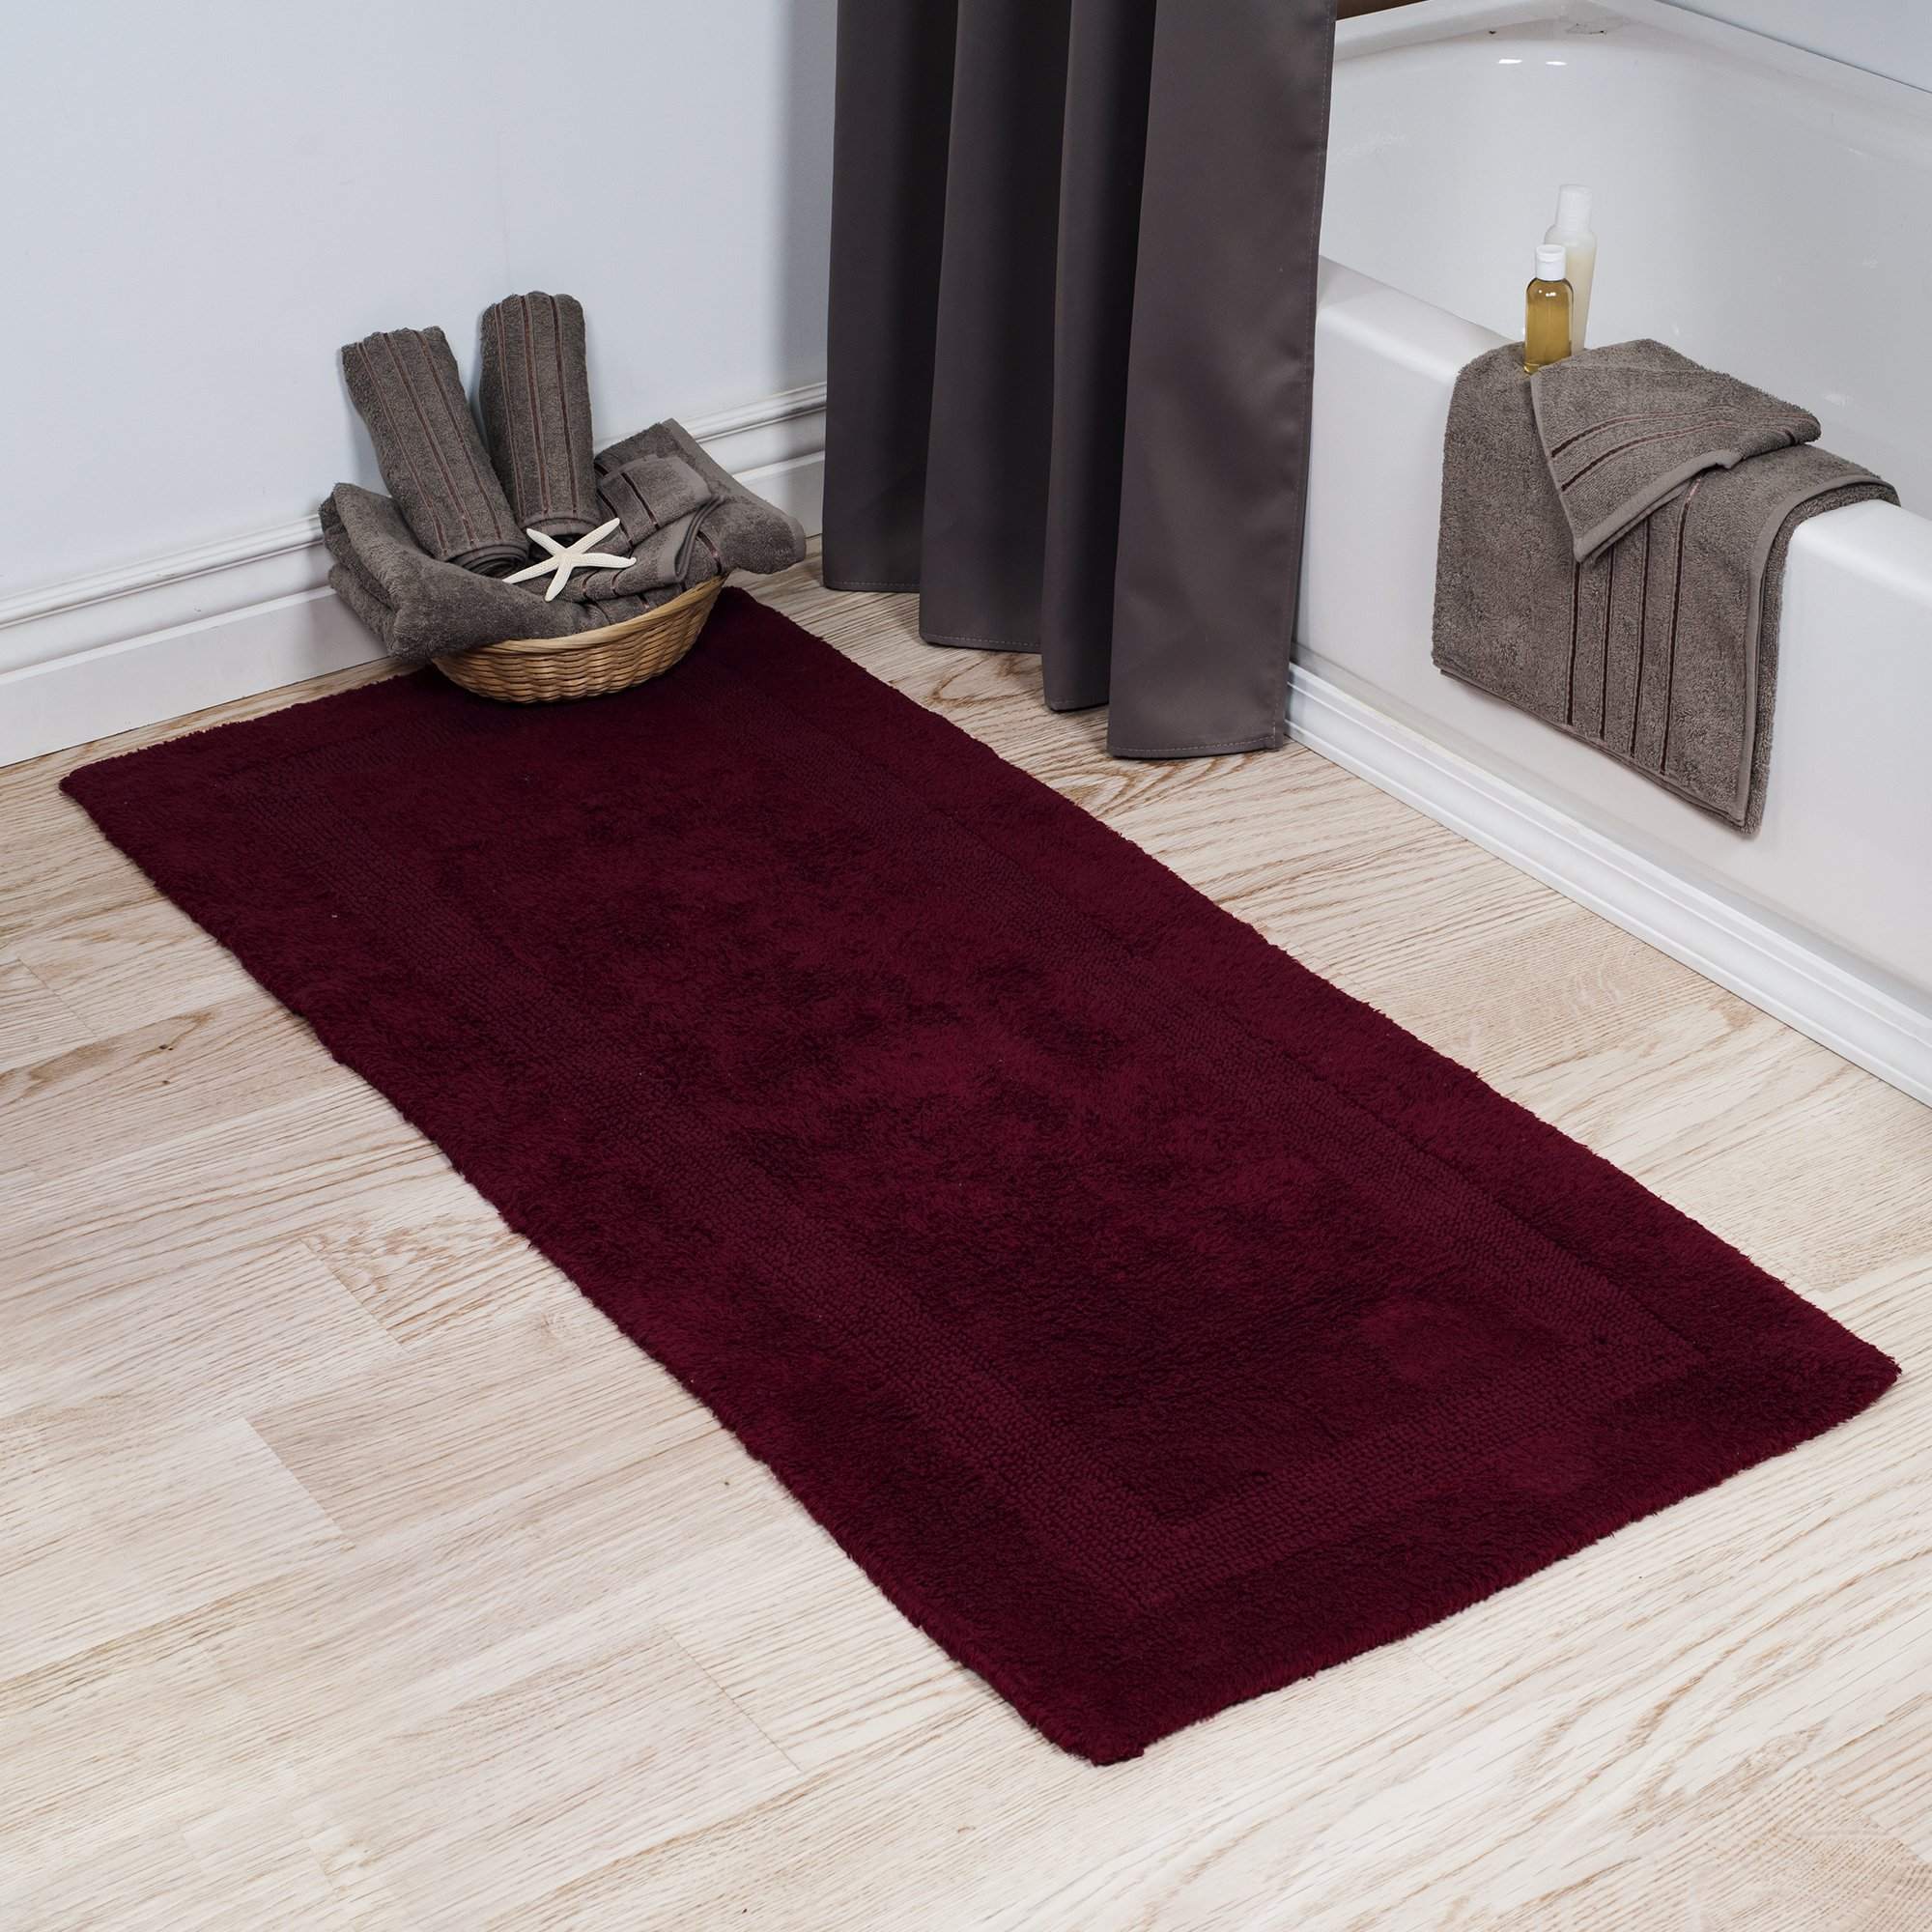 Lavish Home Cotton Bath Mat- Plush 100 Percent Cotton 24x60 Long Bathroom Runner- Reversible, Soft, Absorbent, and Machine Washable Rug by (Burgundy)